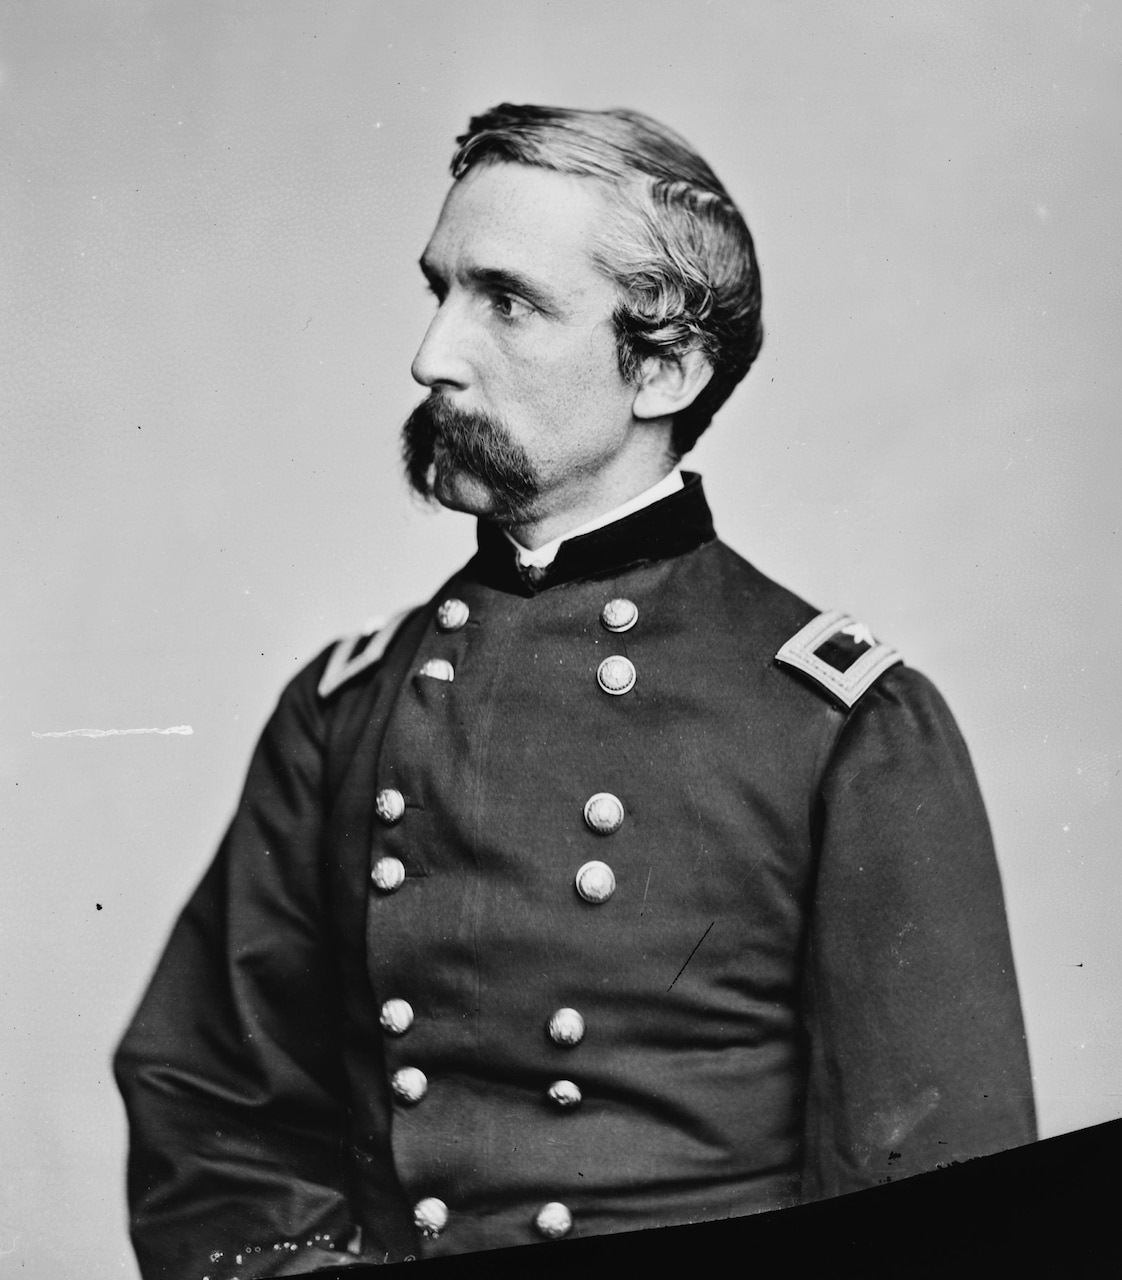 A man with a large mustache in Civil War dress uniform poses while looking into the distance.